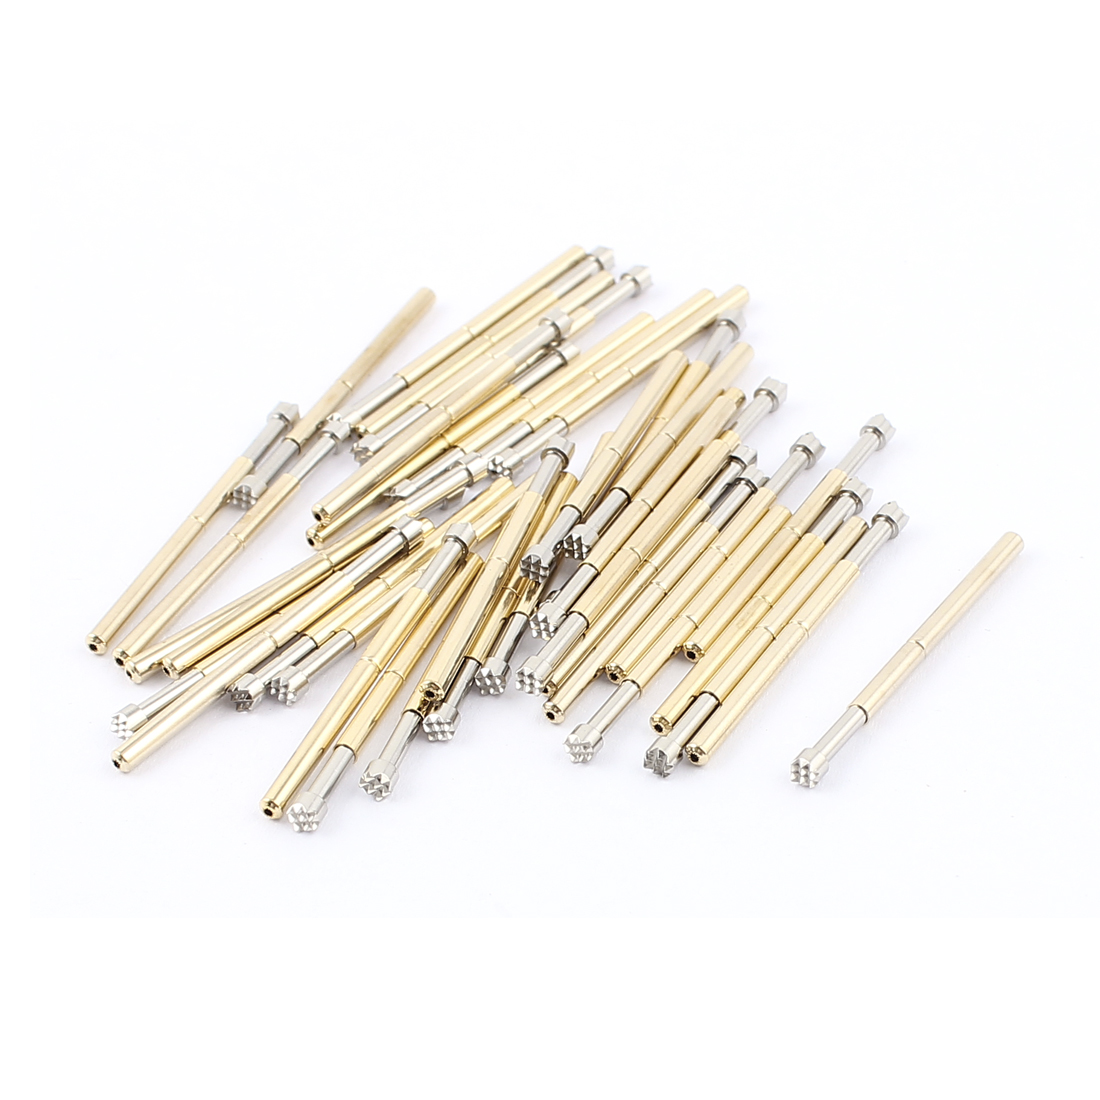 40Pcs P125H 2.5mm Dia Crown Tip Spring Test Probes Testing Pins Gold Tone 33mm for PCB Borad